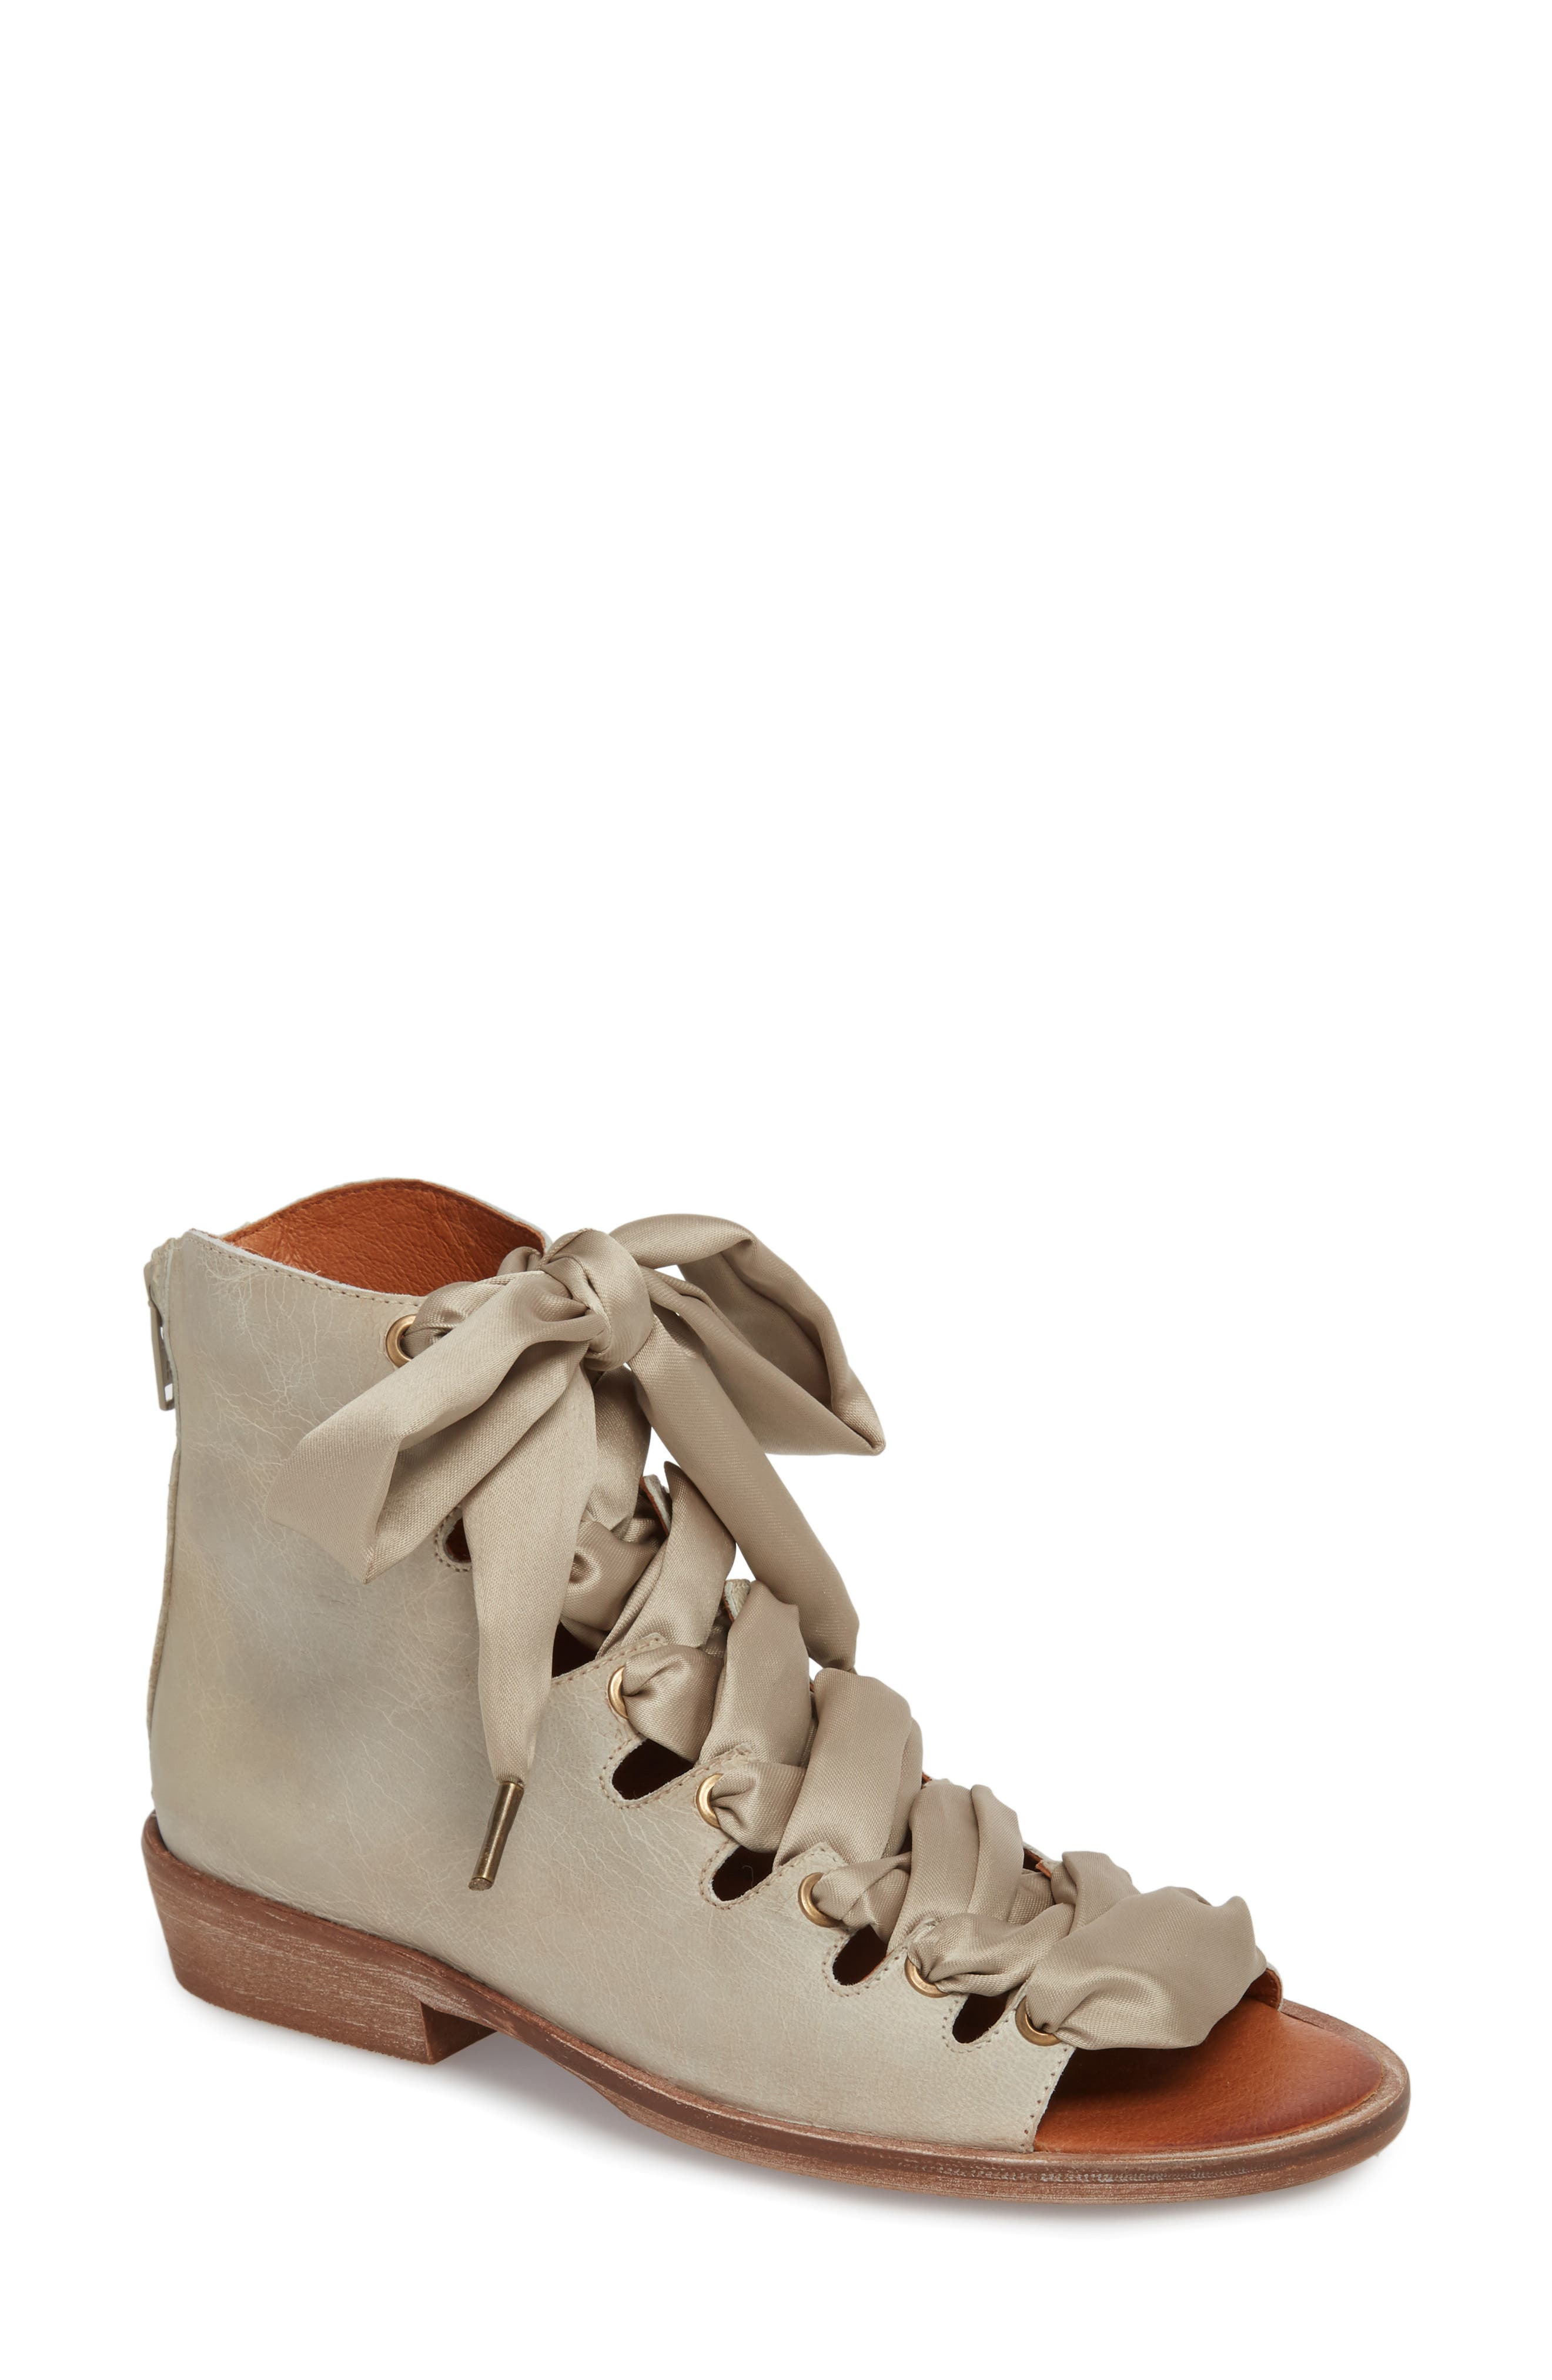 Alternate Image 1 Selected - Free People Palms Lace-Up Bootie Sandal (Women)